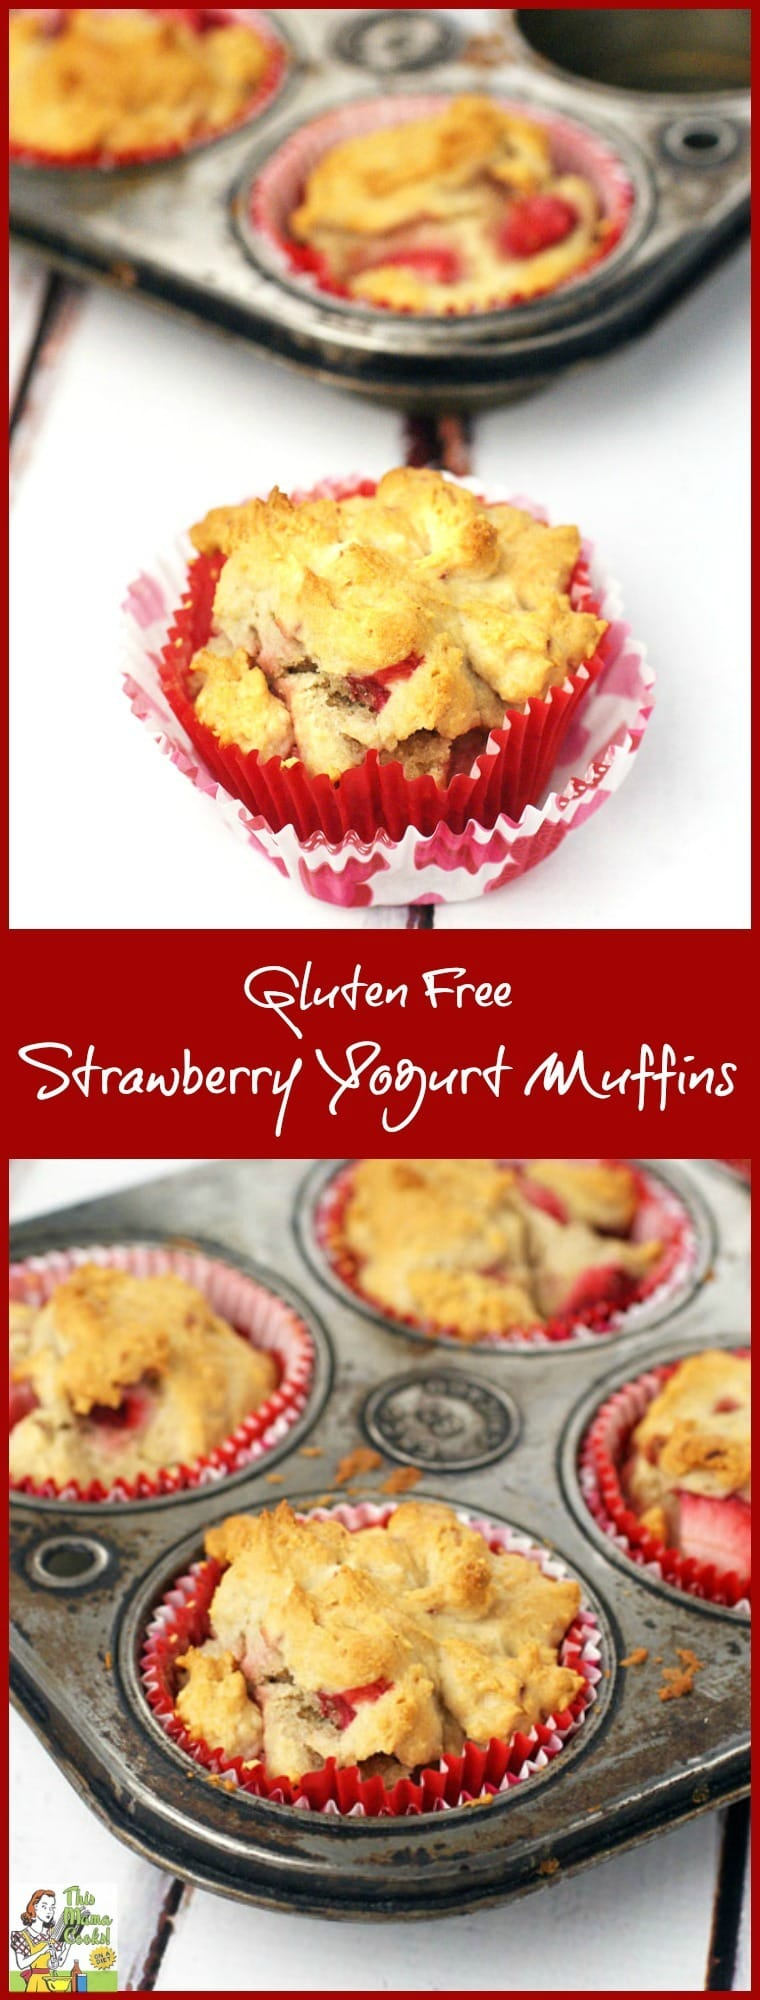 Are you looking for an easy gluten free muffin recipe? Try this one made with strawberry yogurt and your favorite gluten free all purpose baking mix! Gluten Free Strawberry Yogurt Muffins can be made with frozen or fresh strawberries. Serve them for a gluten free breakfast, brunch or snack treat!